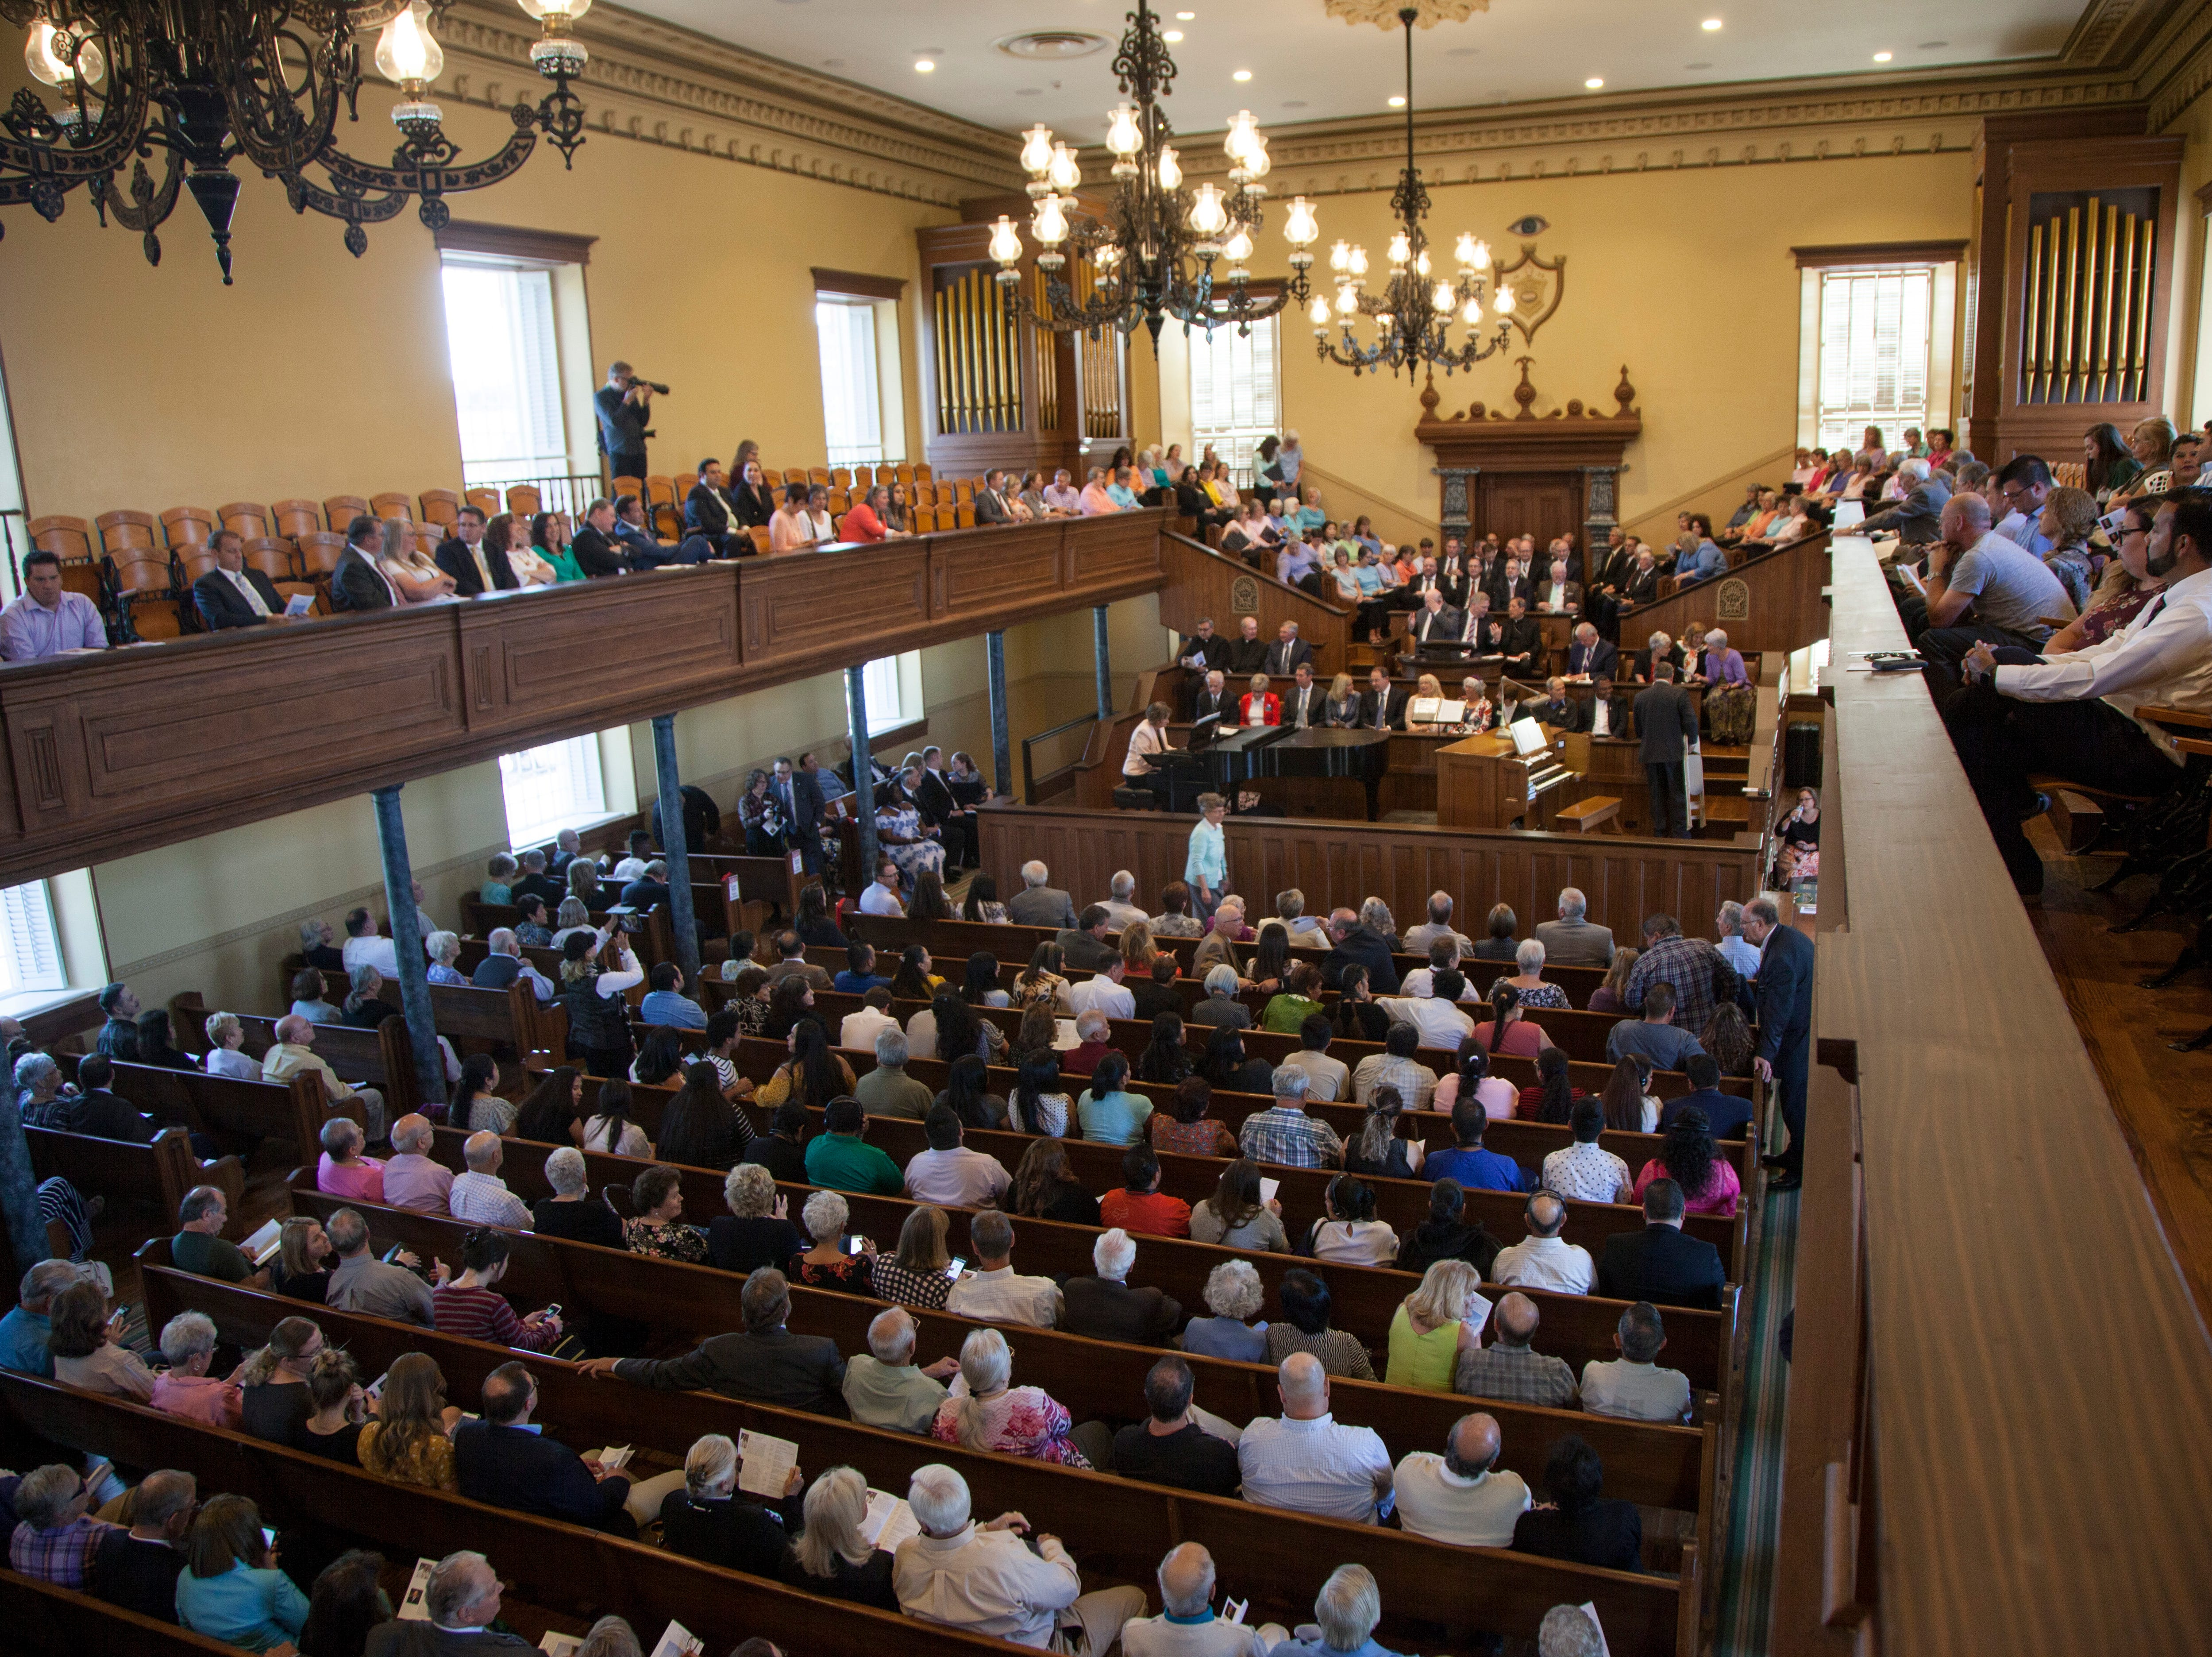 People from various faiths gather at the St. George Tabernacle for an interfaith tribute Thursday, May 2, 2019.